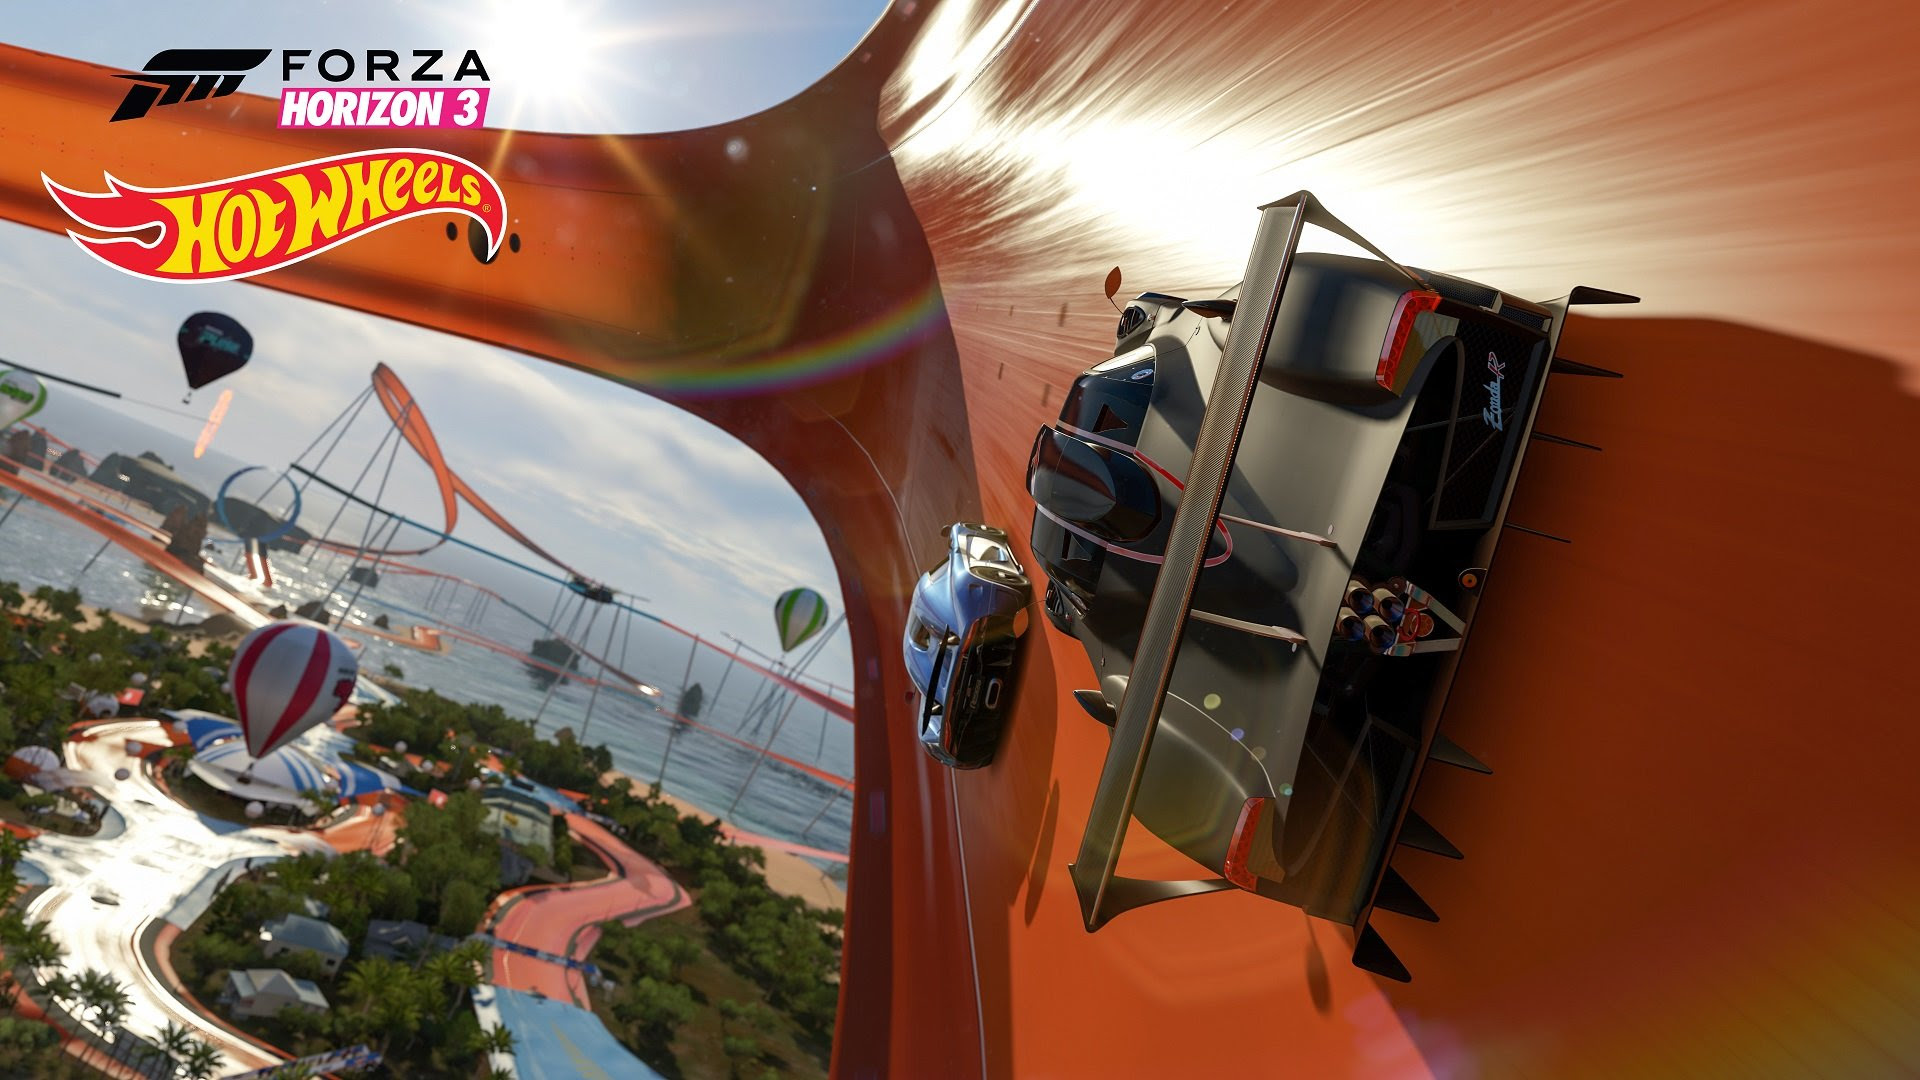 Forza Horizon goes more unrealistic than ever with upcoming Hot Wheels add-on screenshot